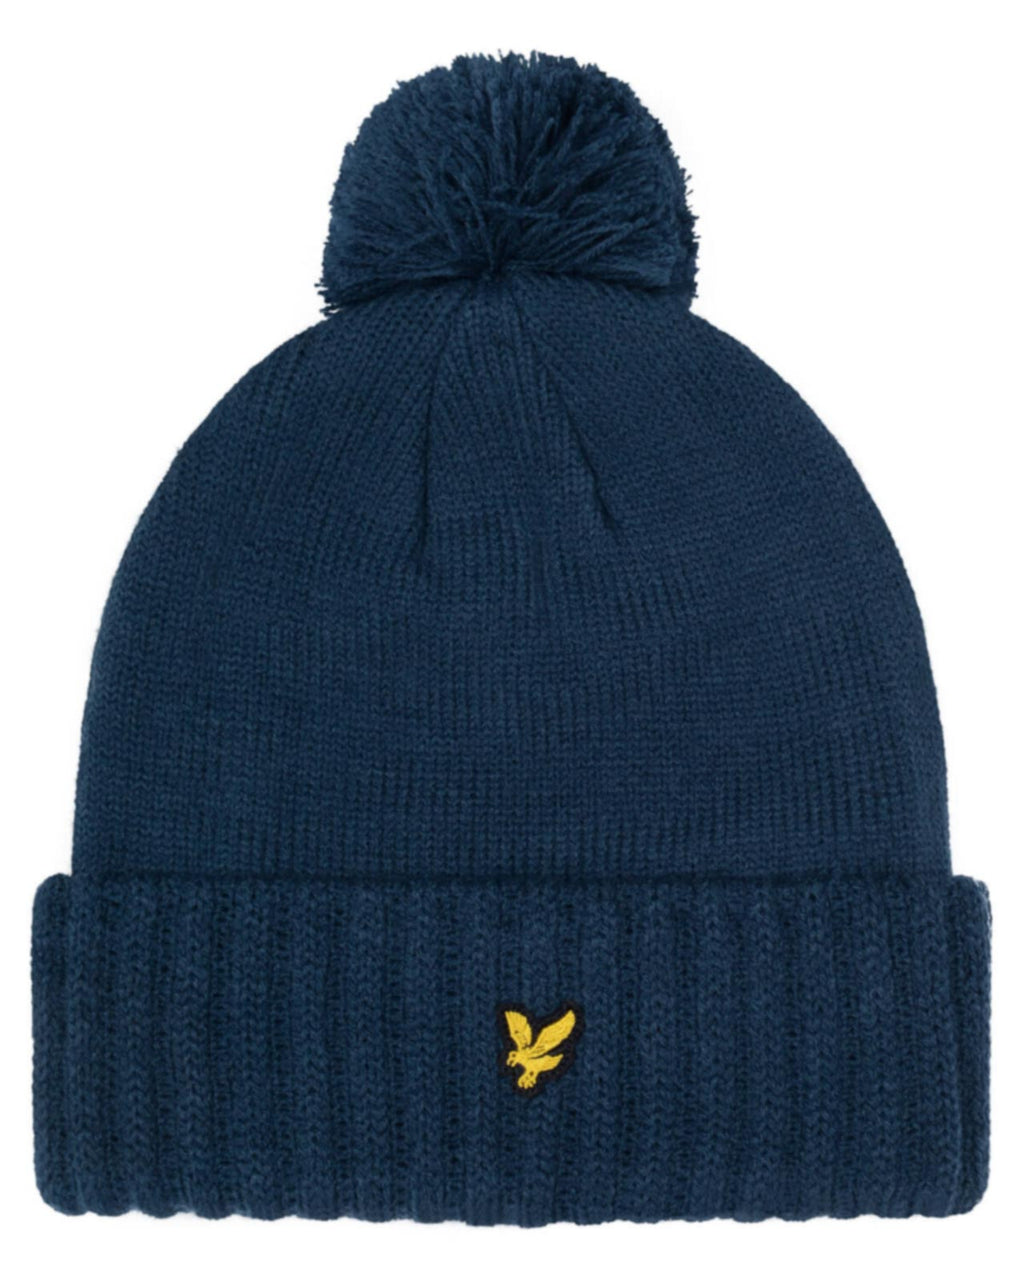 Lyle & Scott Bobble Beanie Hat Navy